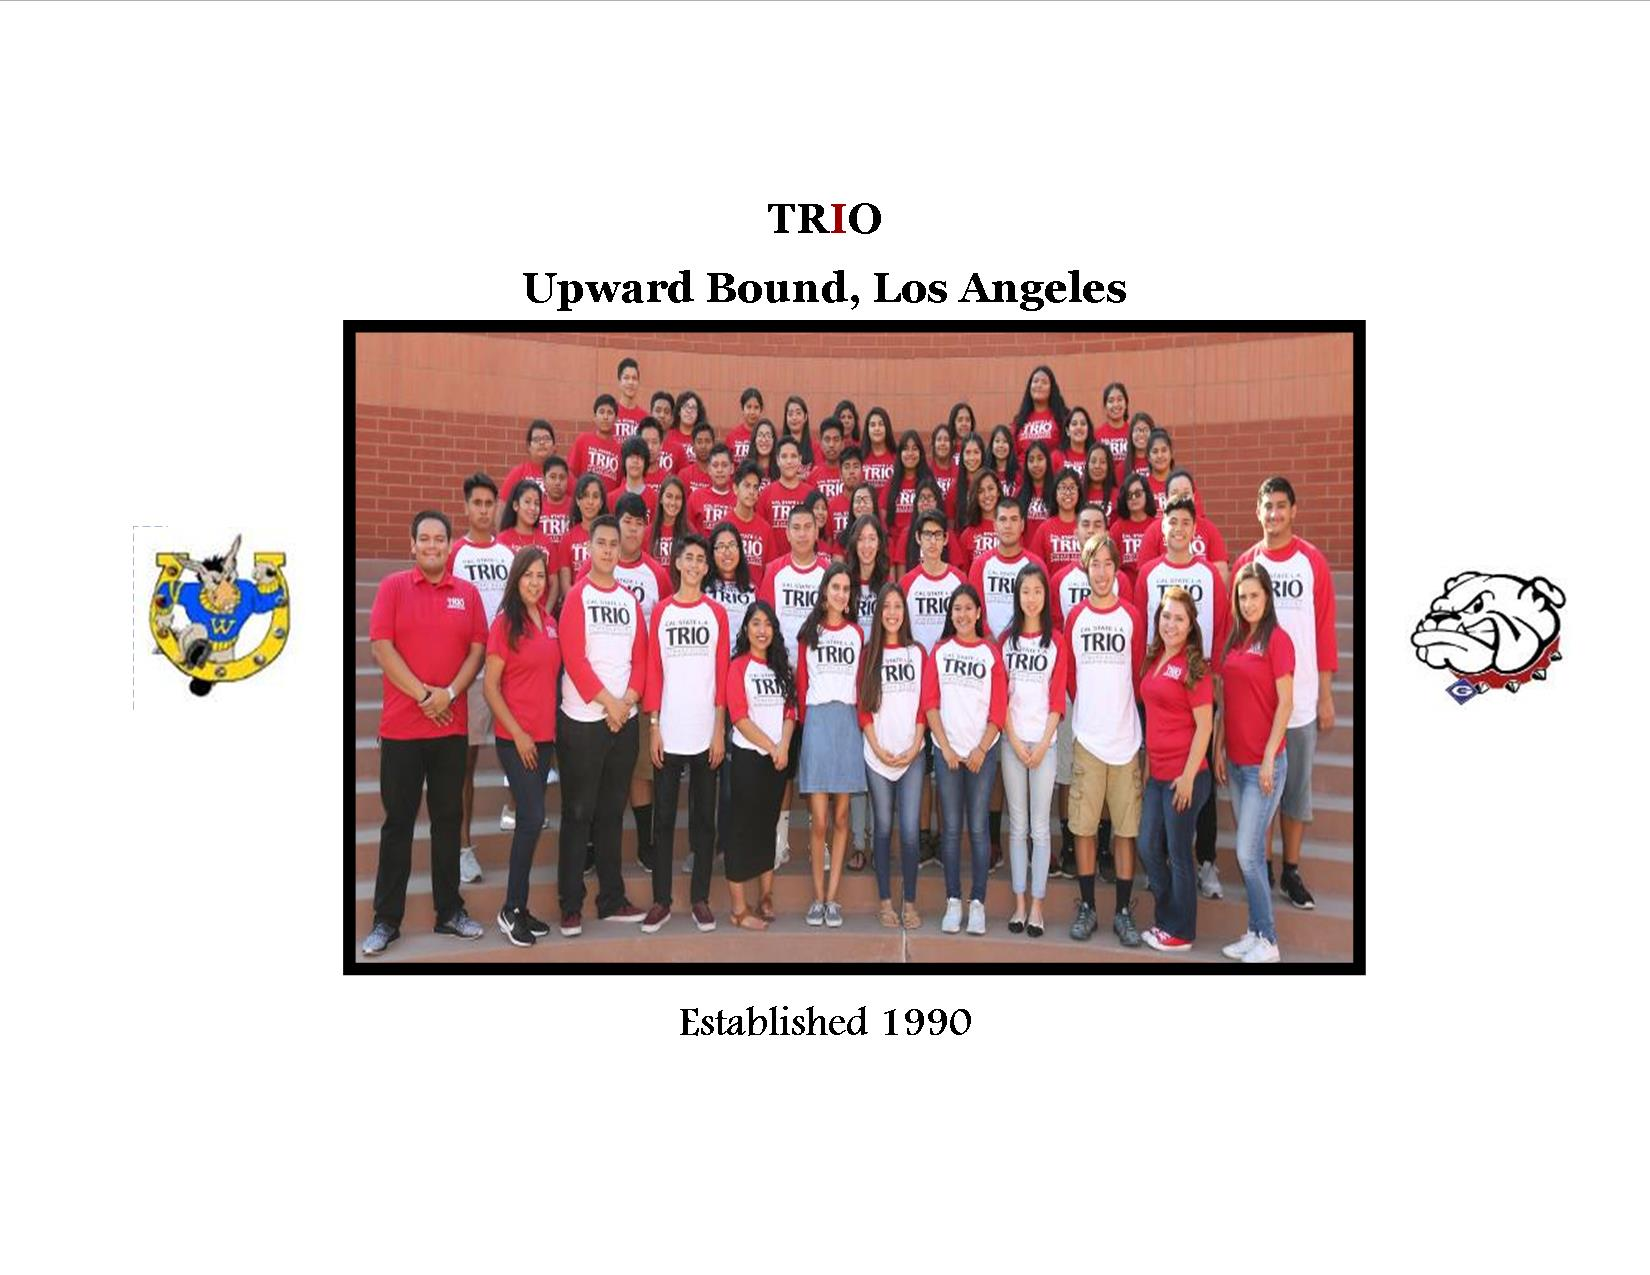 Cal State LA Upward Bound Los Angeles